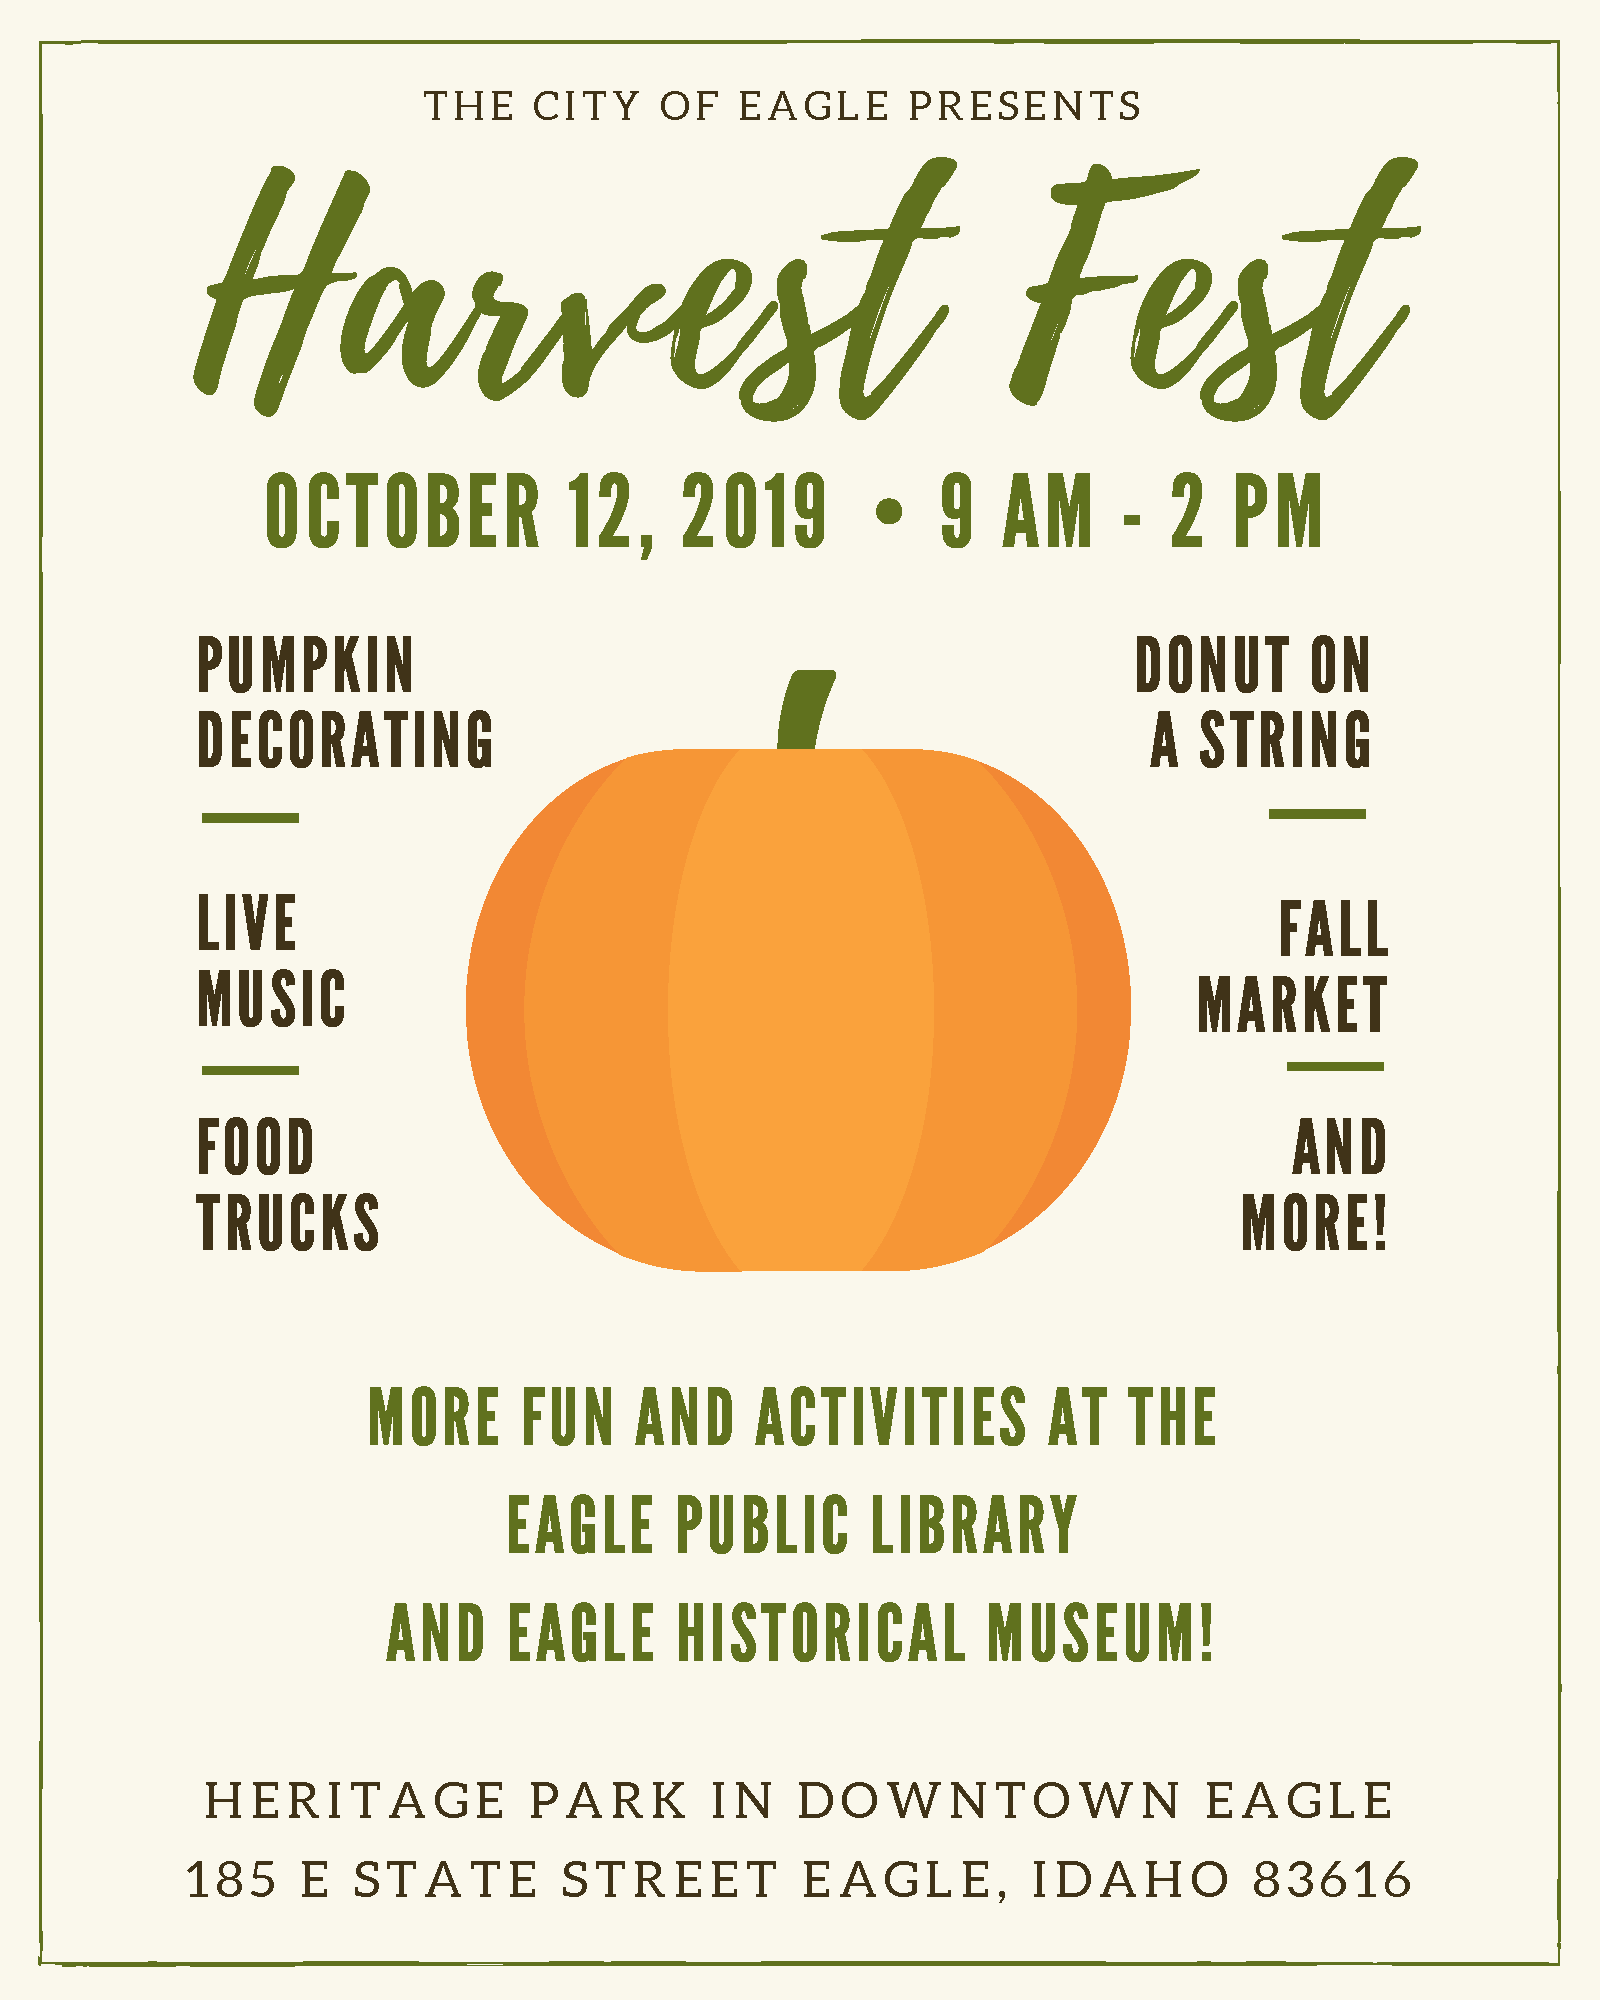 Harvest Fest 2019 Activity Guide